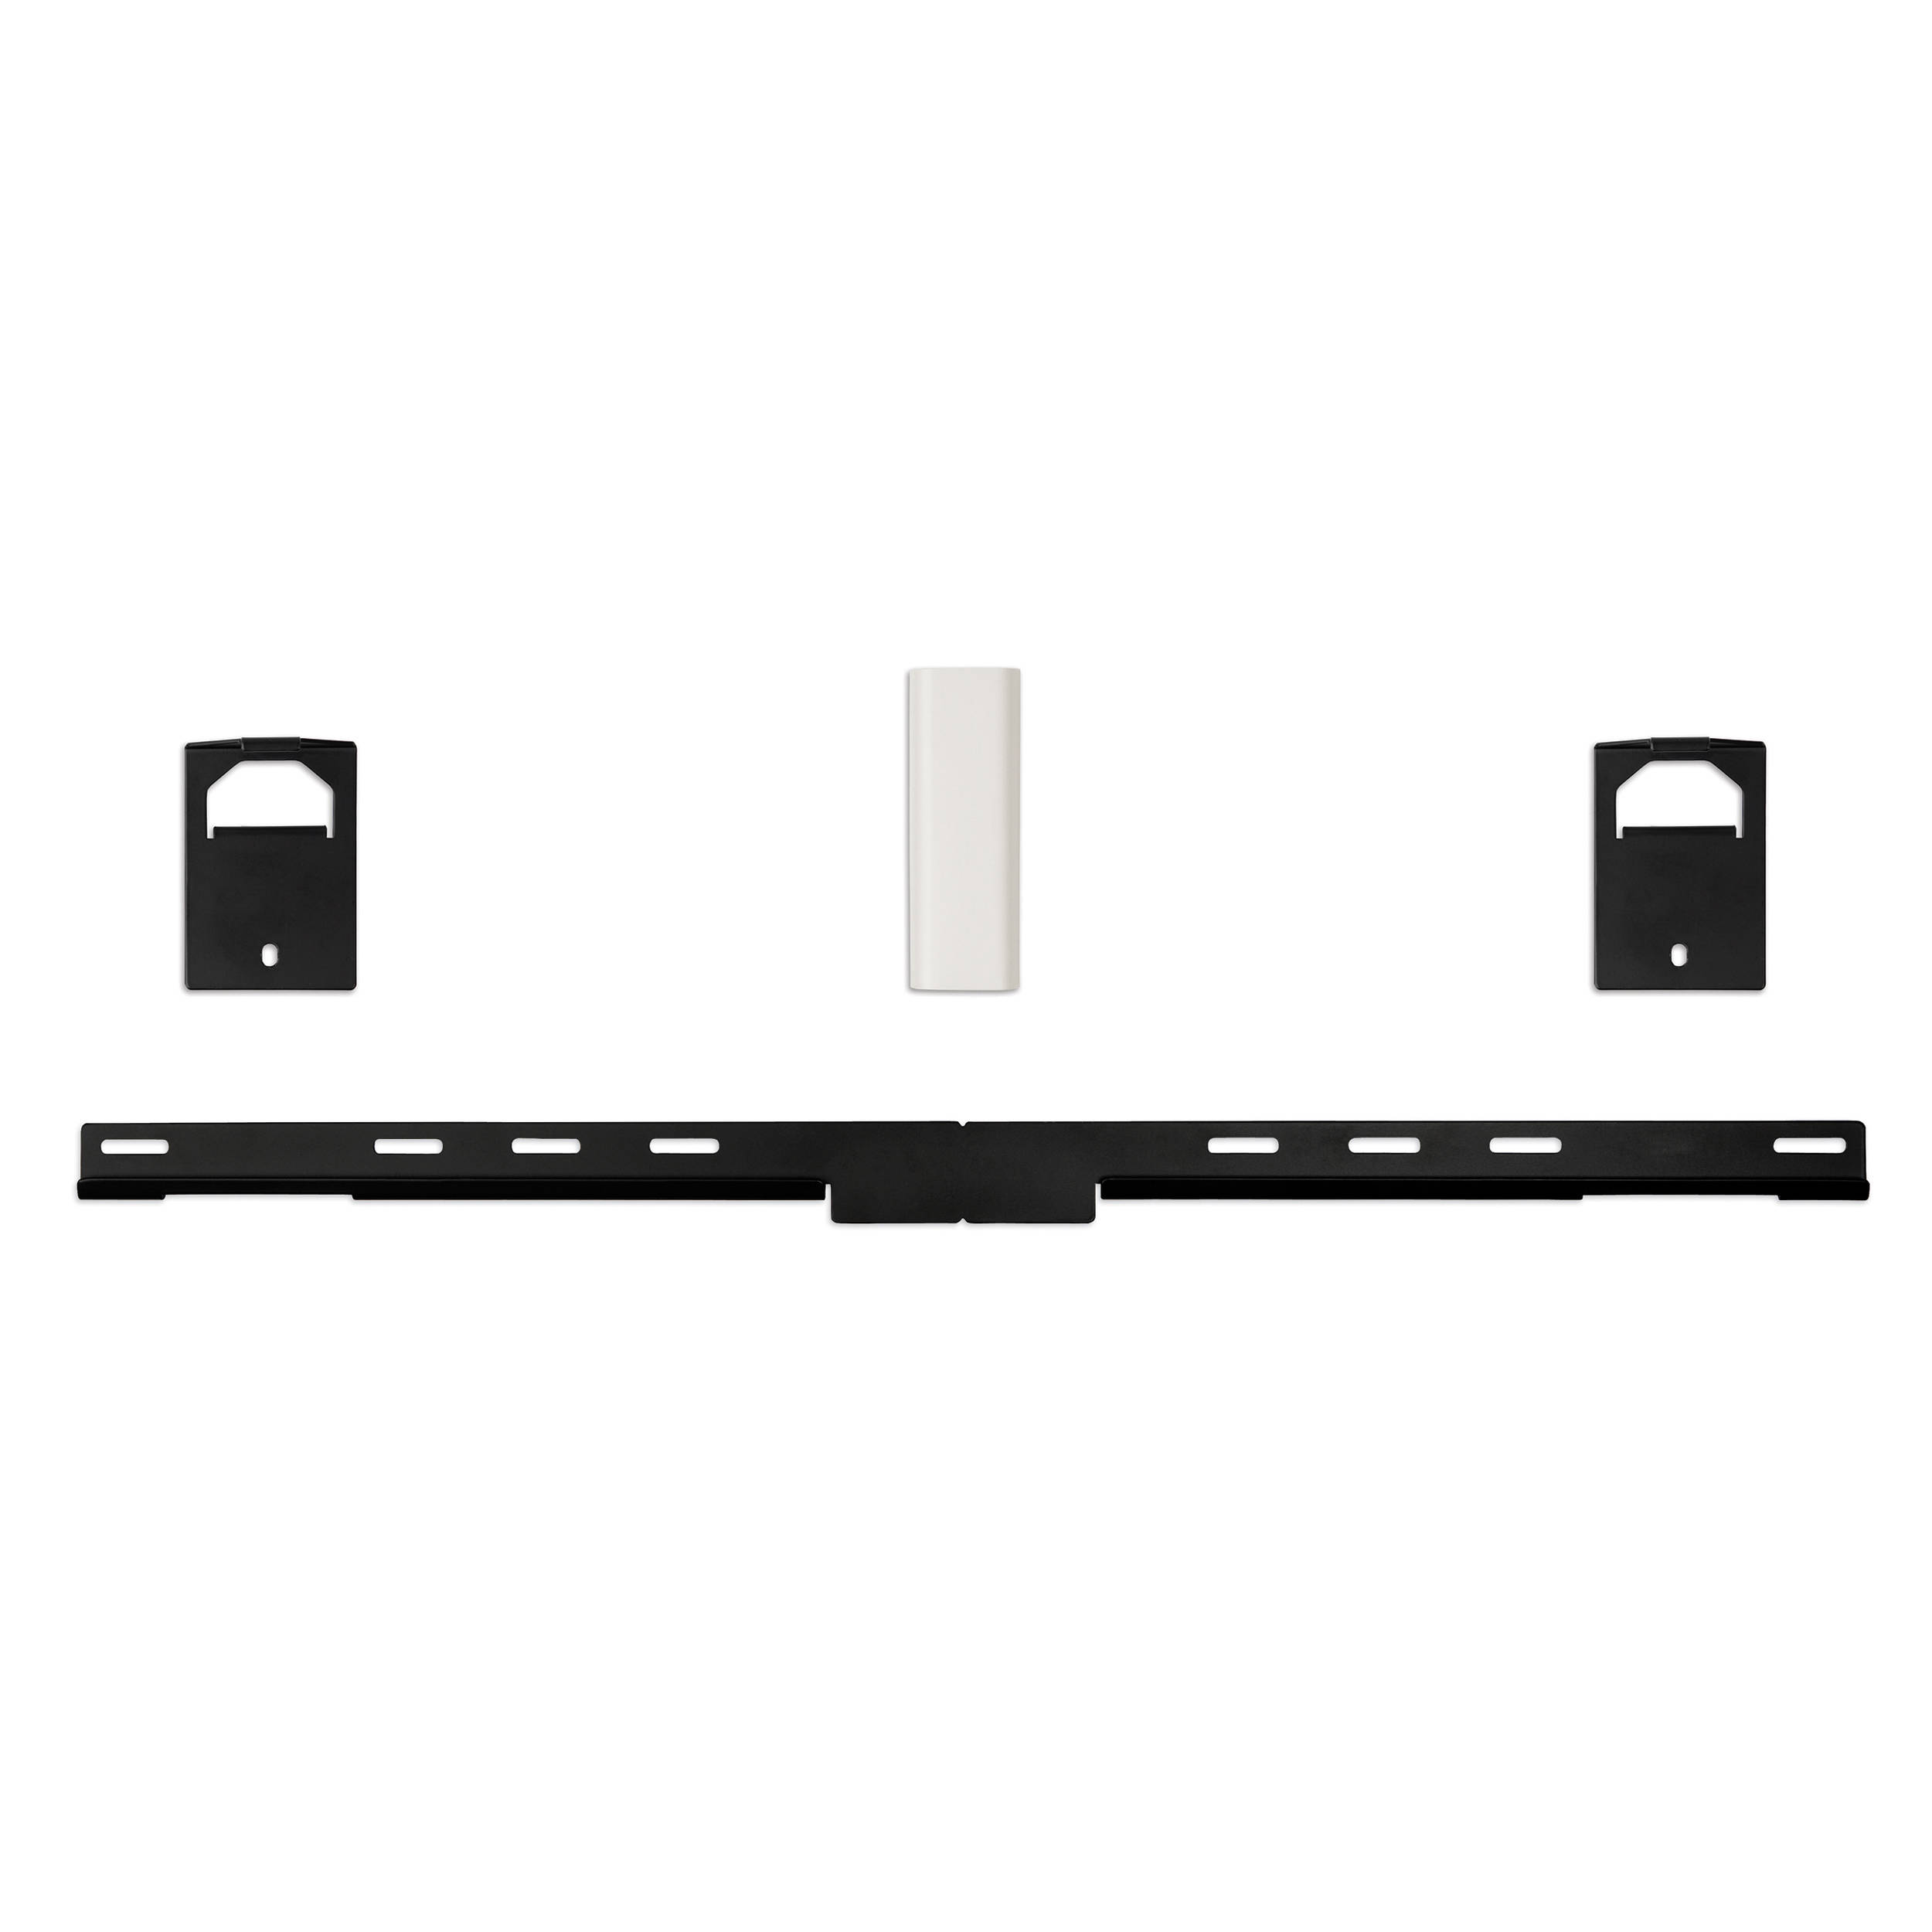 bose wb 135 wall mount kit 347322 0020 b h photo video. Black Bedroom Furniture Sets. Home Design Ideas